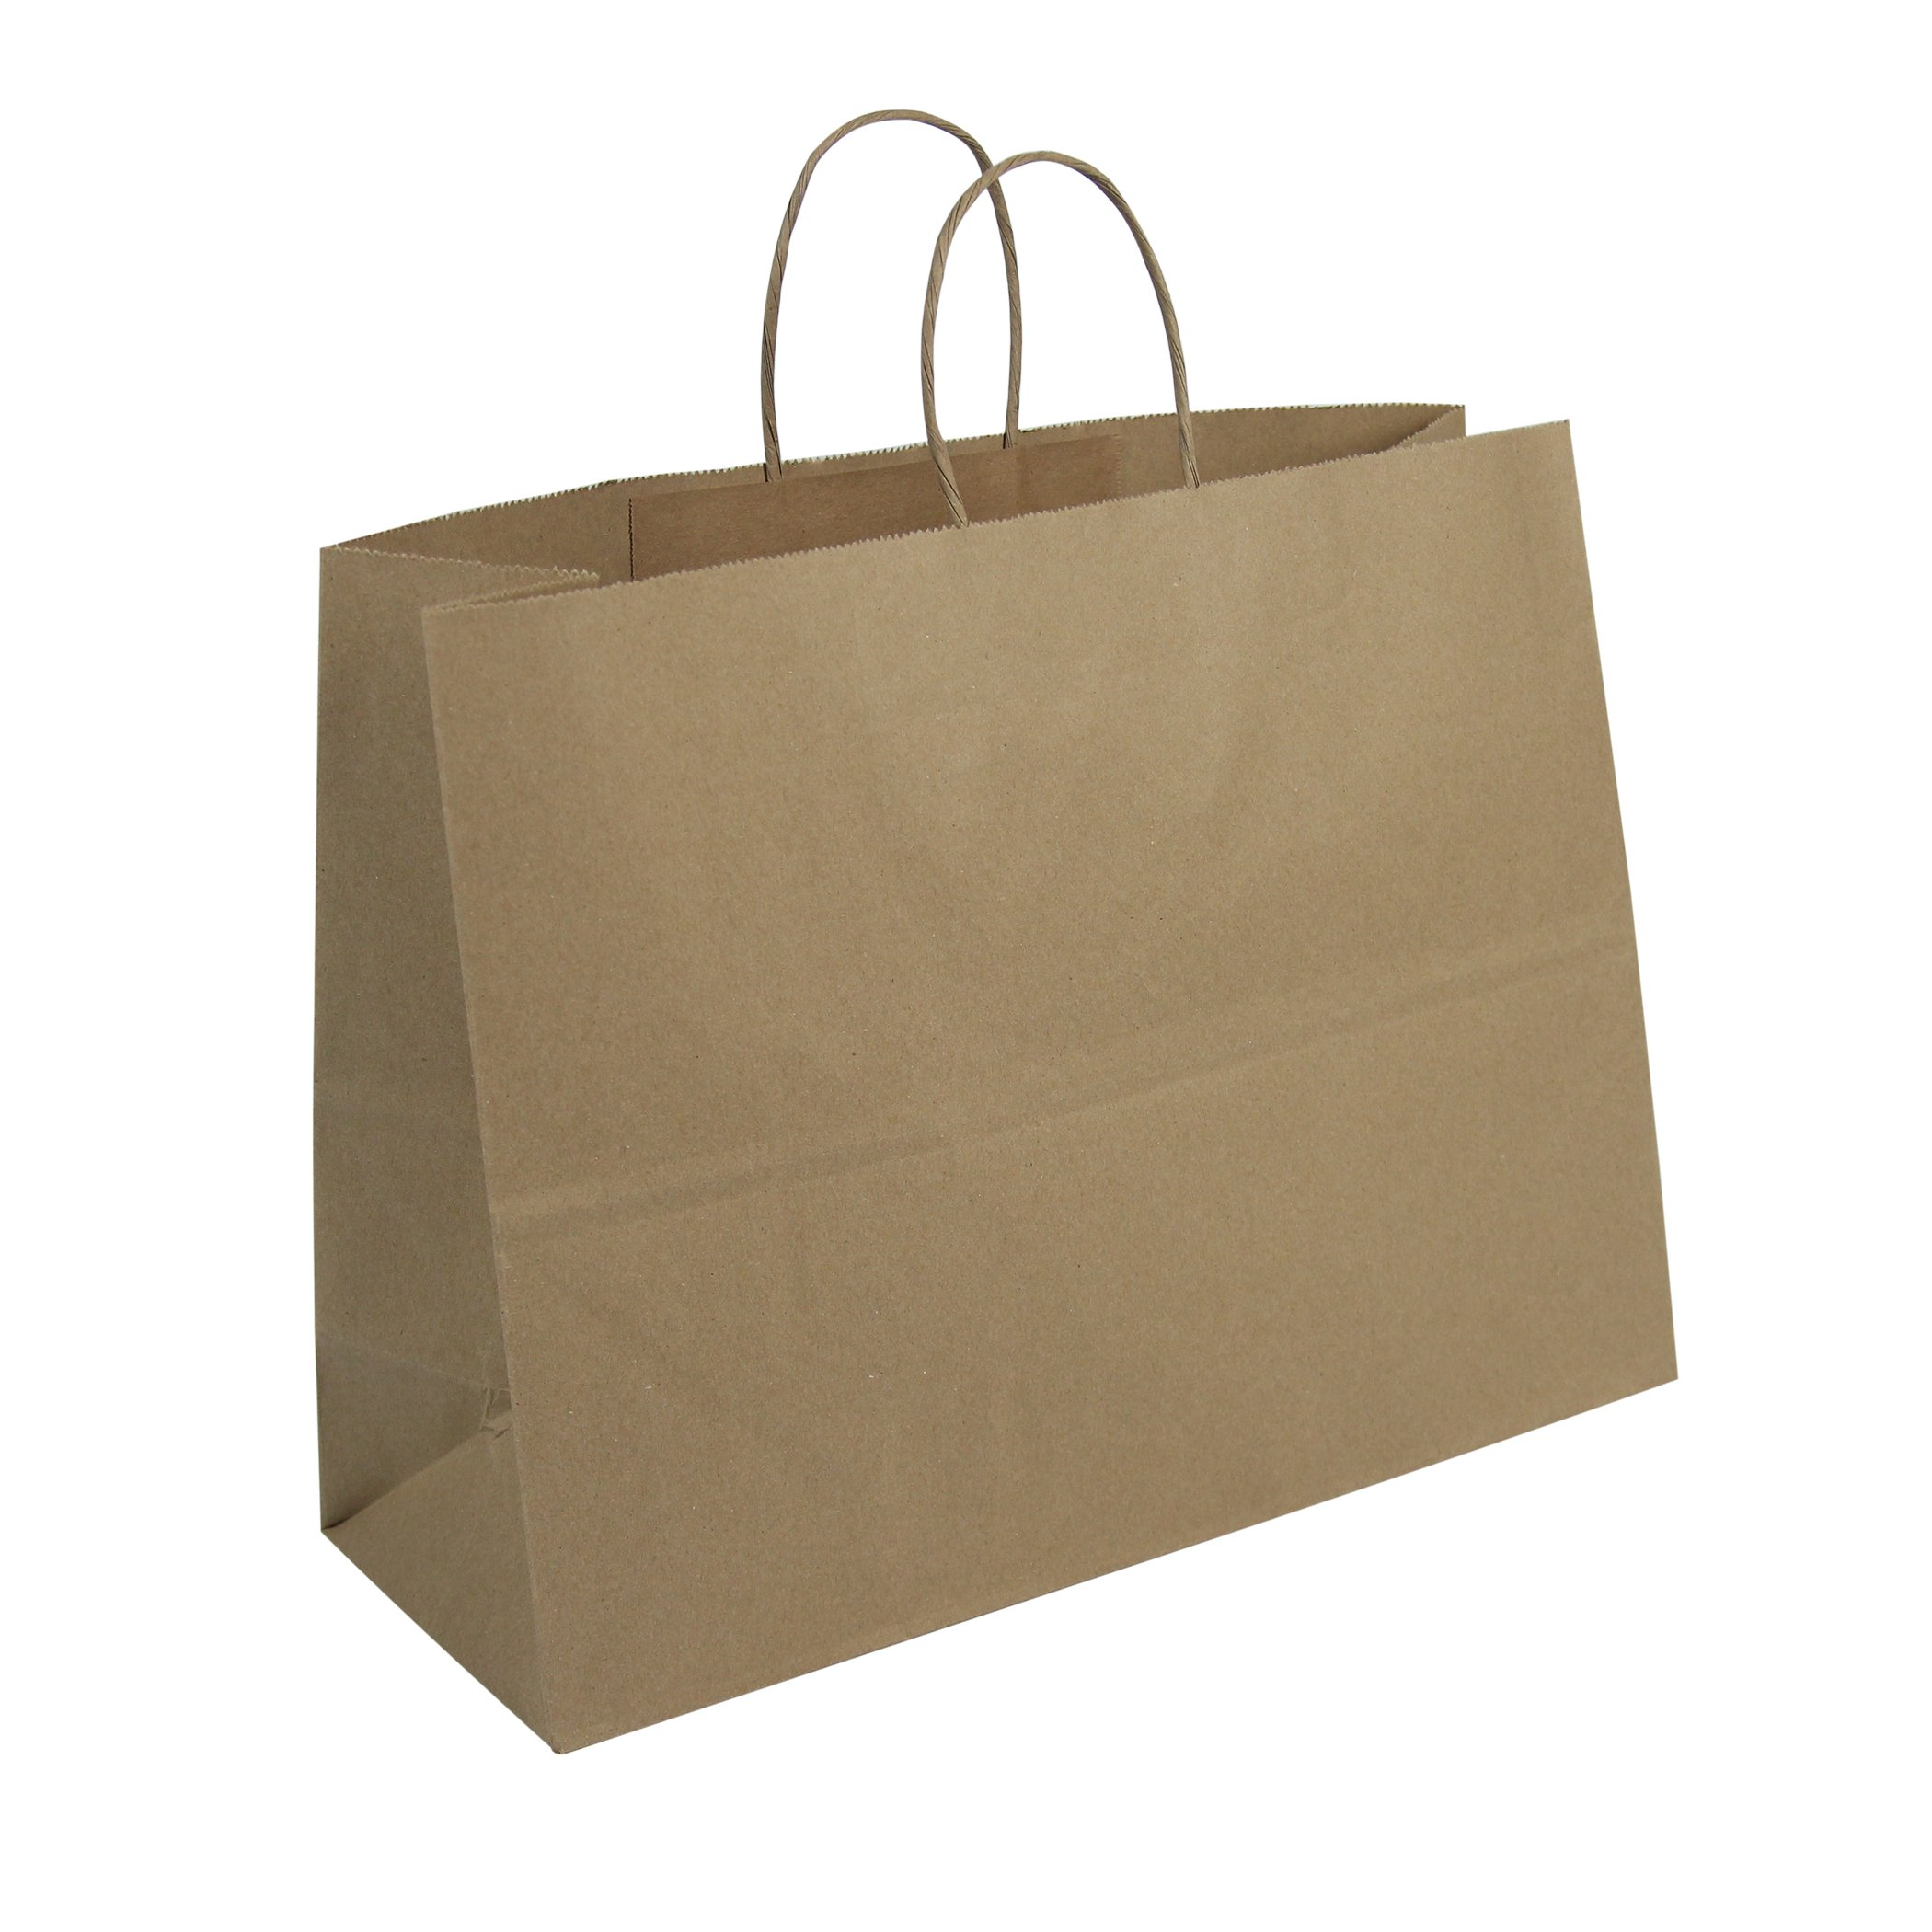 Duro ID# 87129 Tote Shopping Bag 65# 100% Recycled Natural Kraft 250pk 16 x 6 x 12